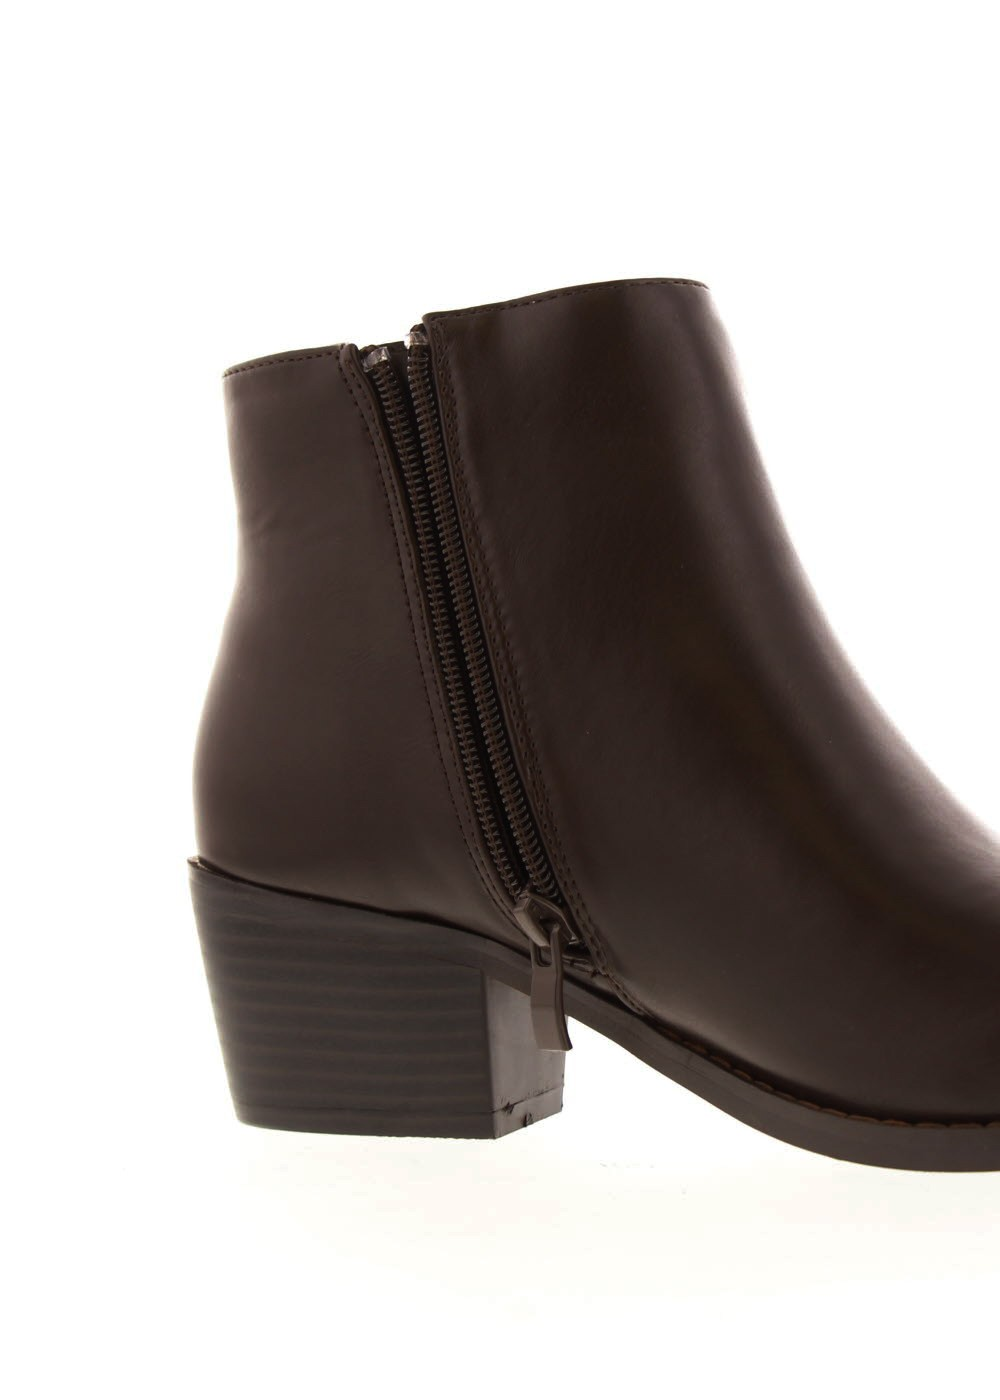 【最大76%OFF】ファスナーブーツ|SD-BROWN|ブーツ|Fabby fabby - Boots collection -